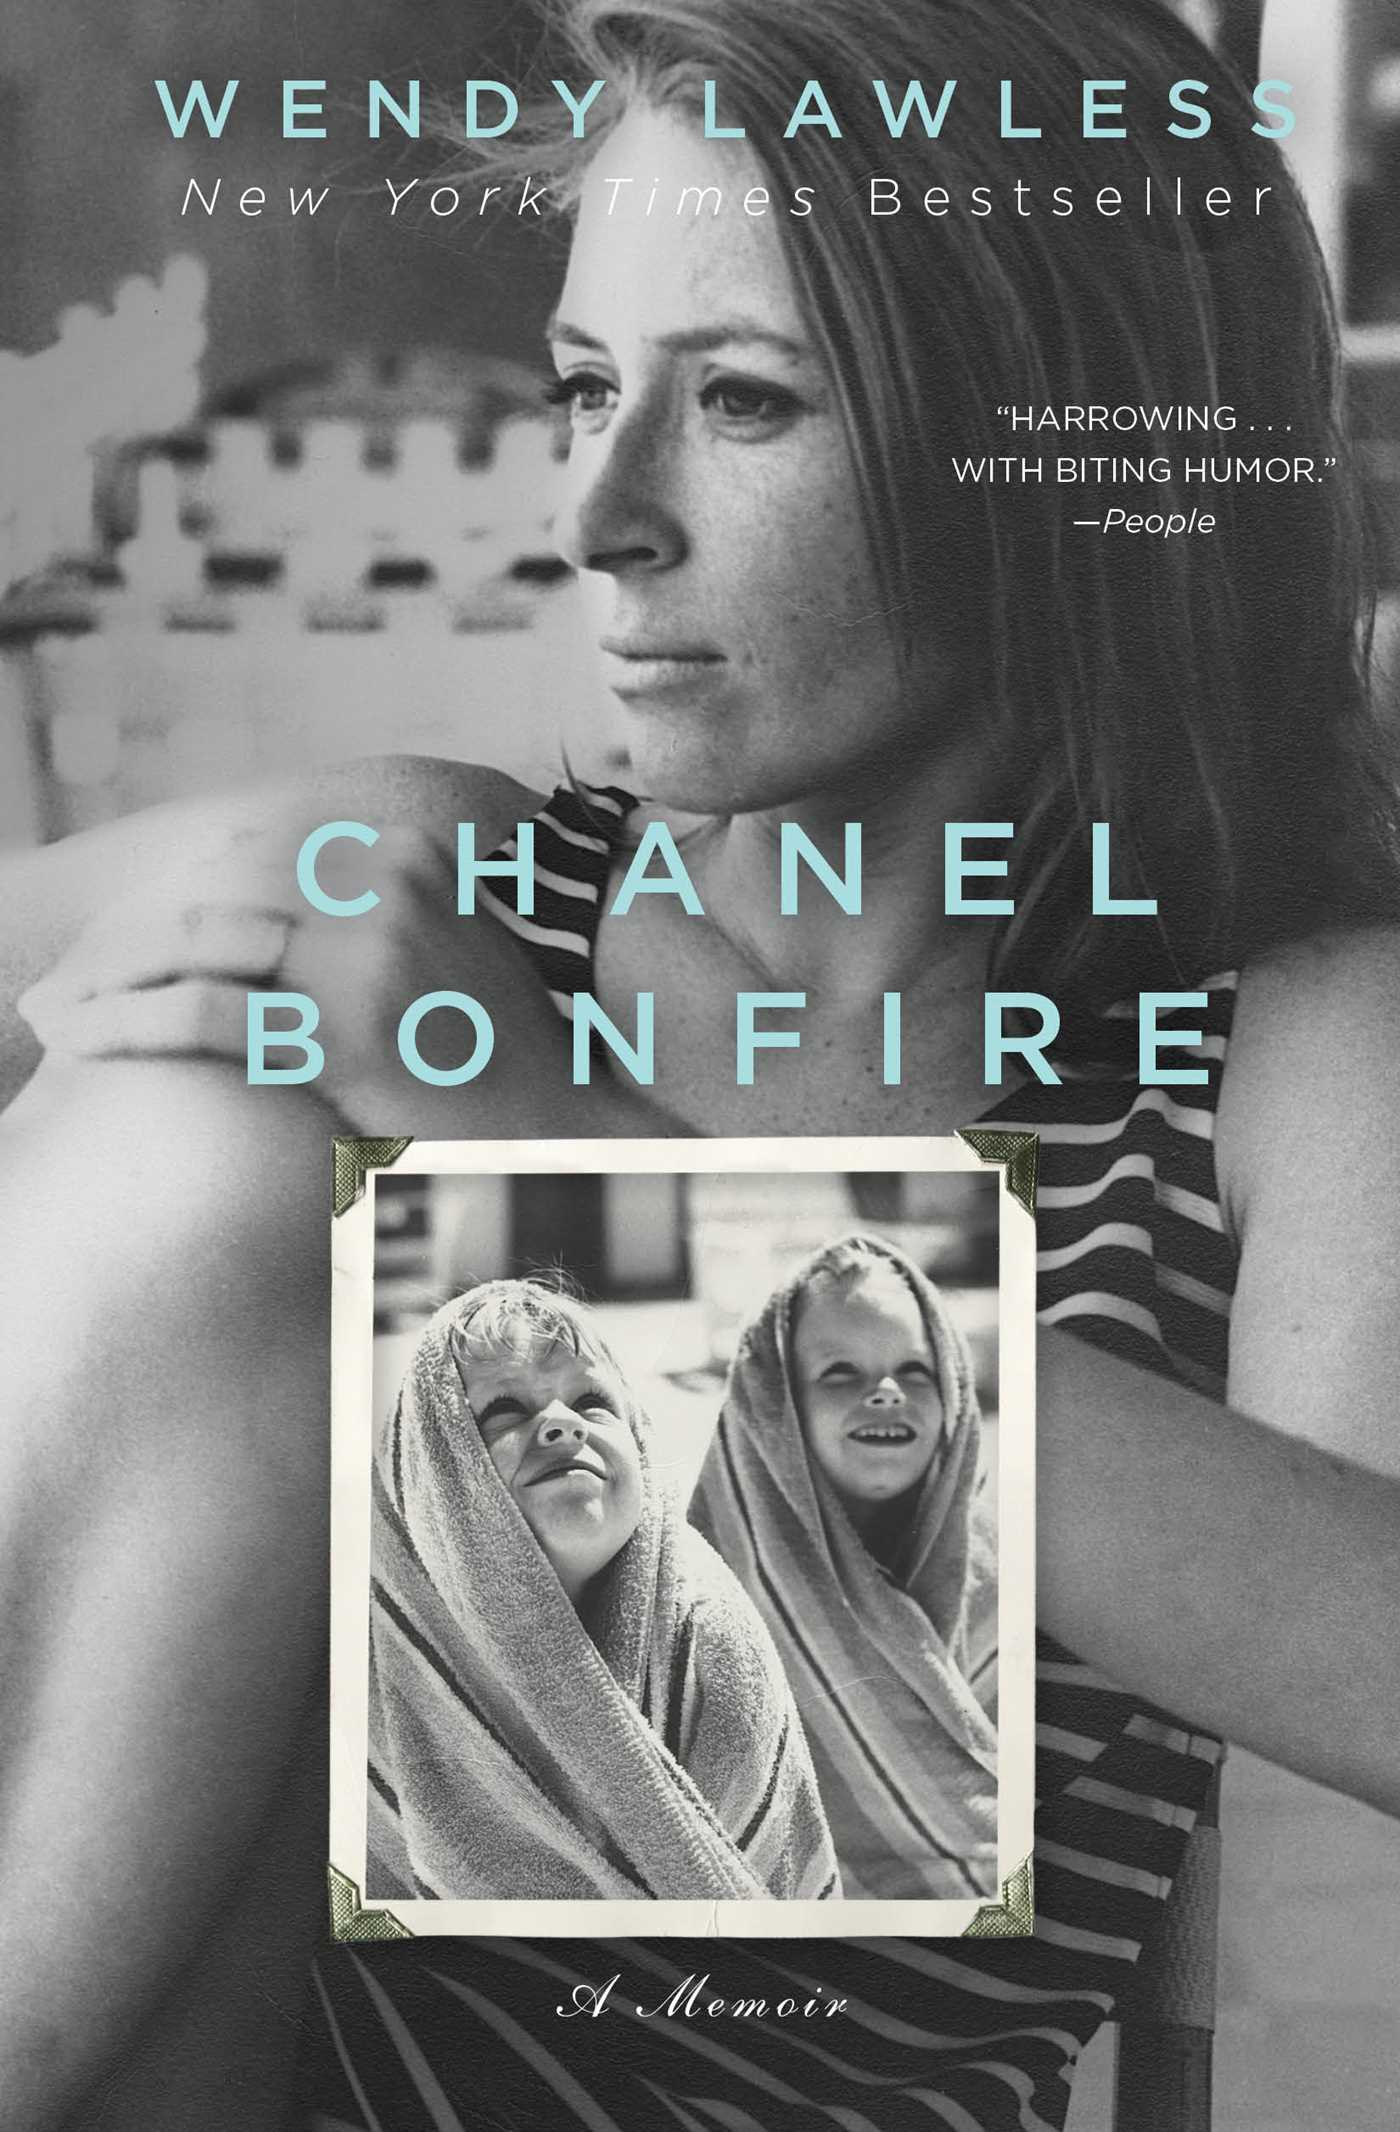 Chanel bonfire 9781476745480 hr